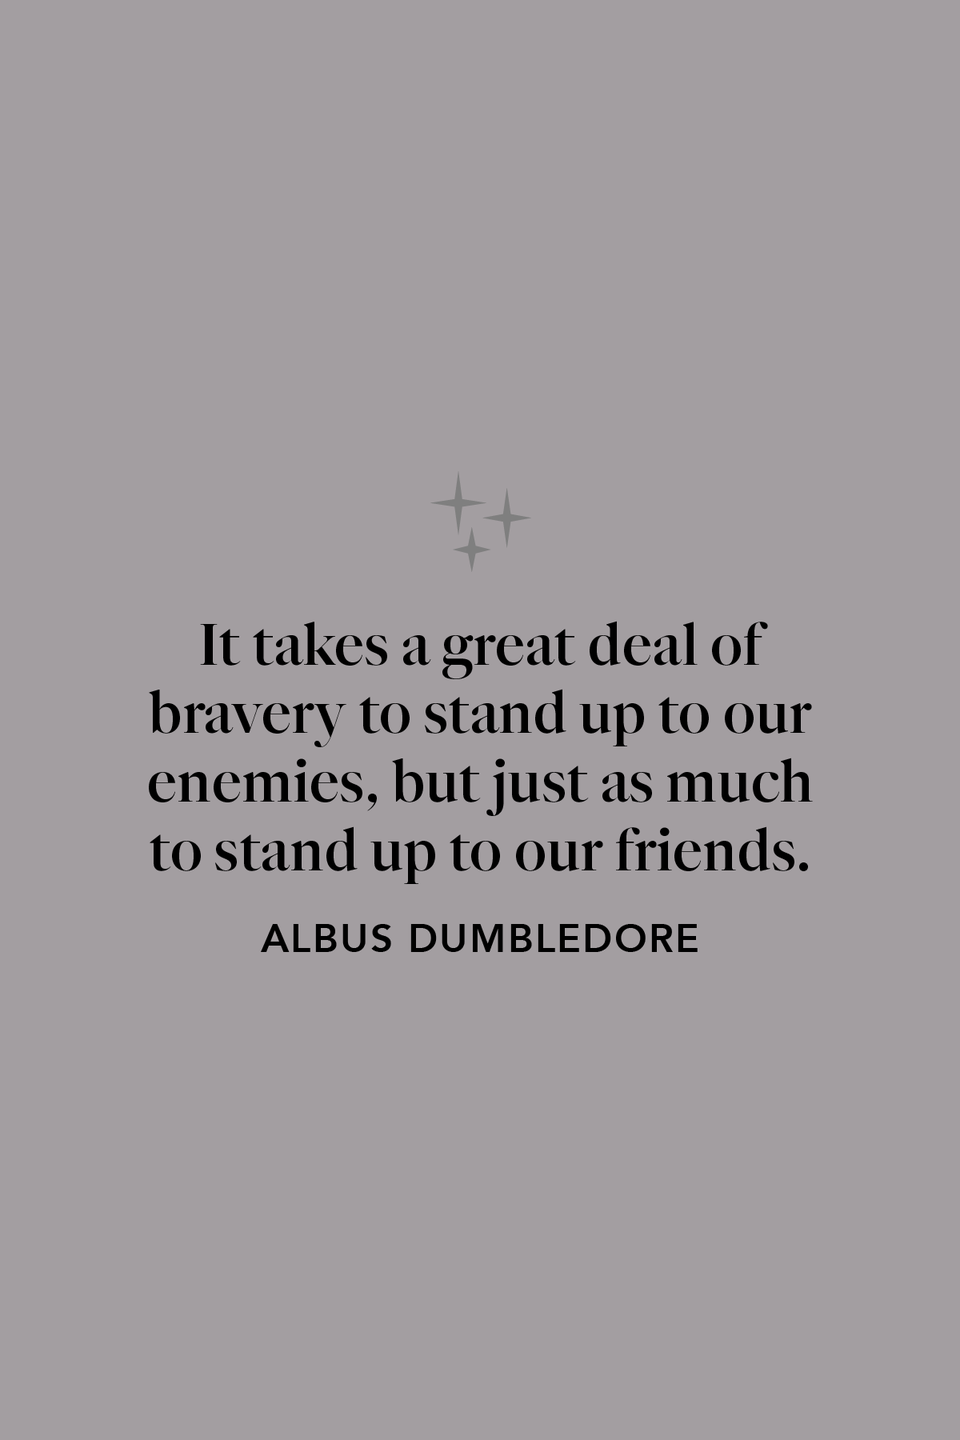 """<p>""""It takes a great deal of bravery to stand up to our enemies, but just as much to stand up to our friends,"""" he tells Harry in <em>The Sorcerer's Stone</em>.</p>"""